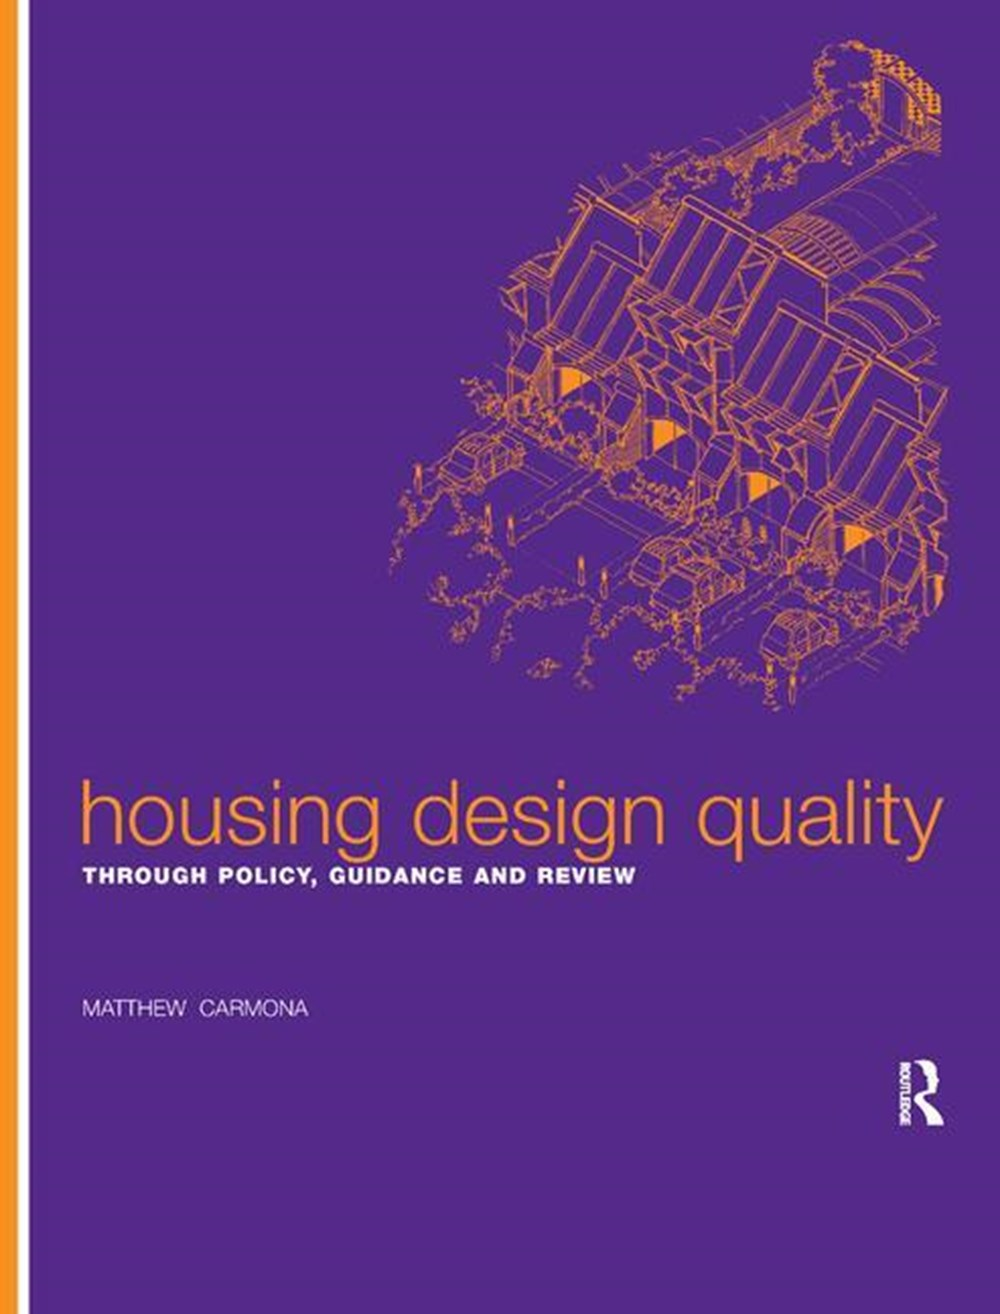 Housing Design Quality Through Policy, Guidance and Review